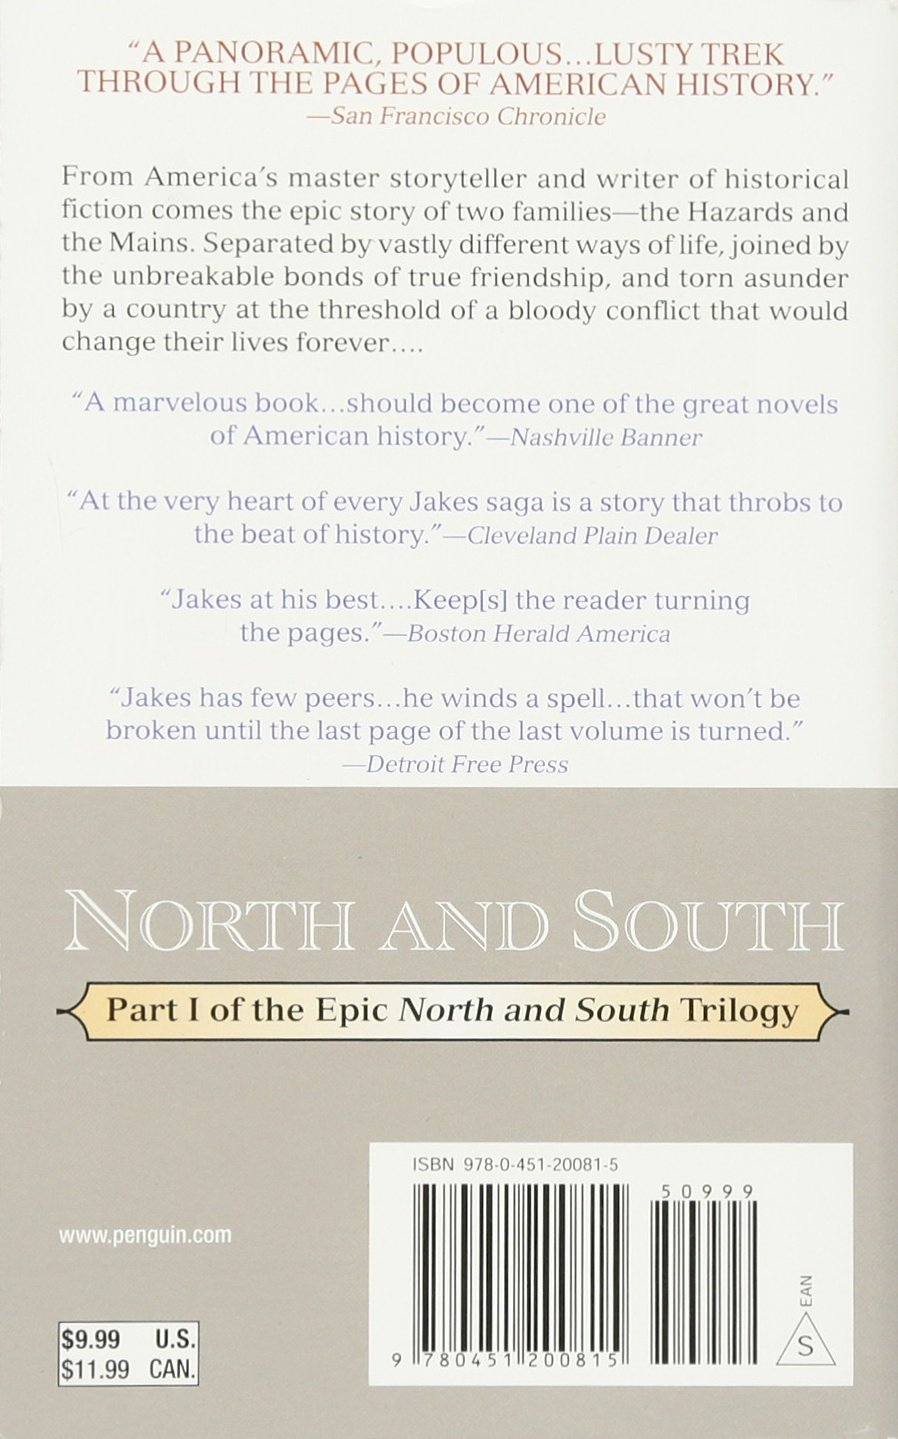 Amazon: North And South (north And South Trilogy Part One)  (9780451200815): John Jakes: Books